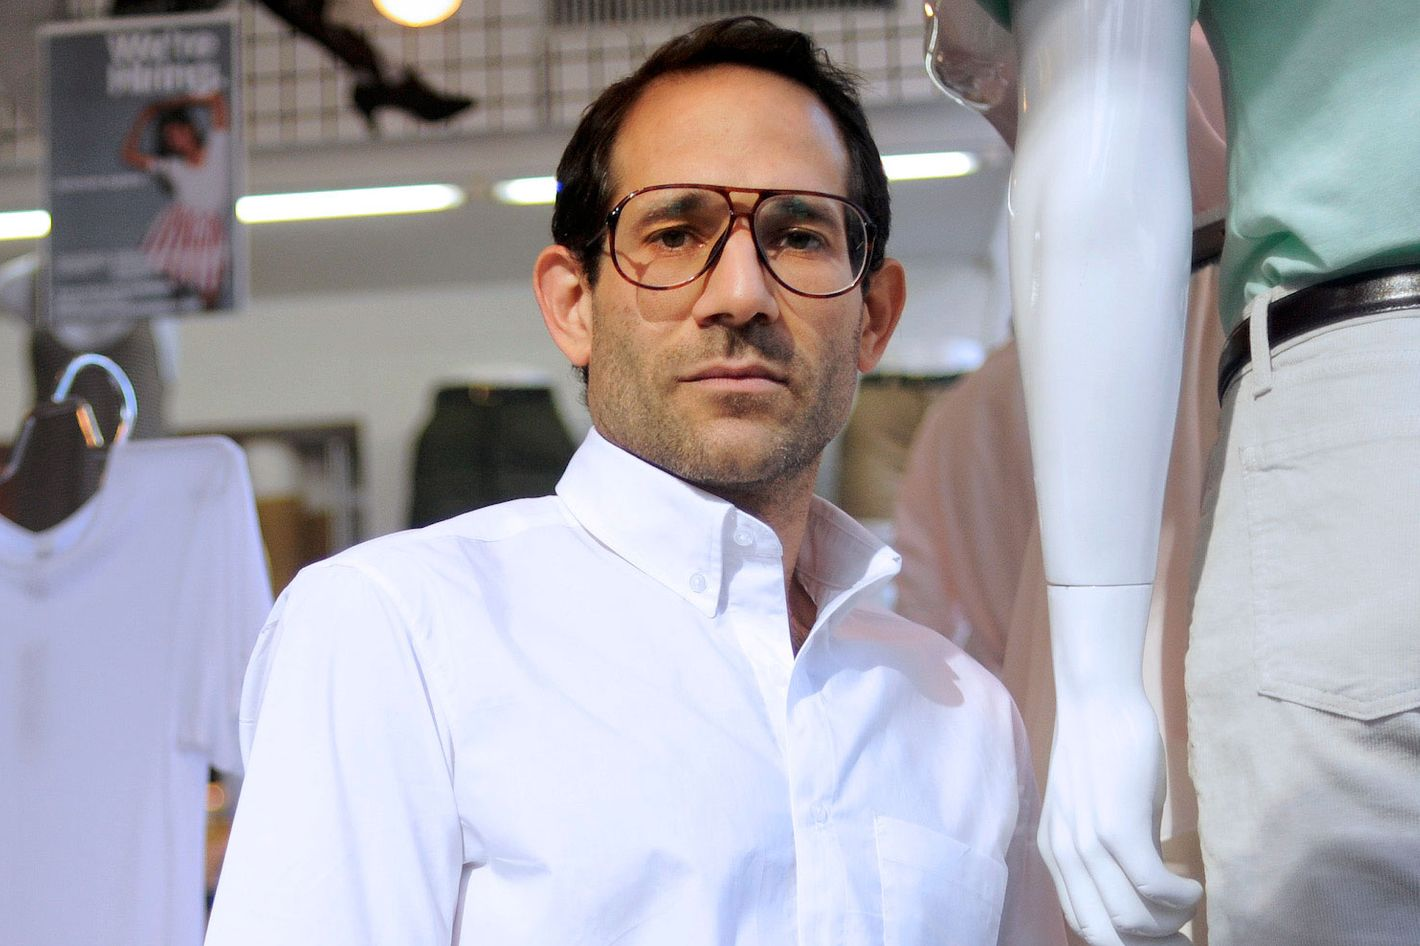 2019 year style- Dov reportedly charney broke